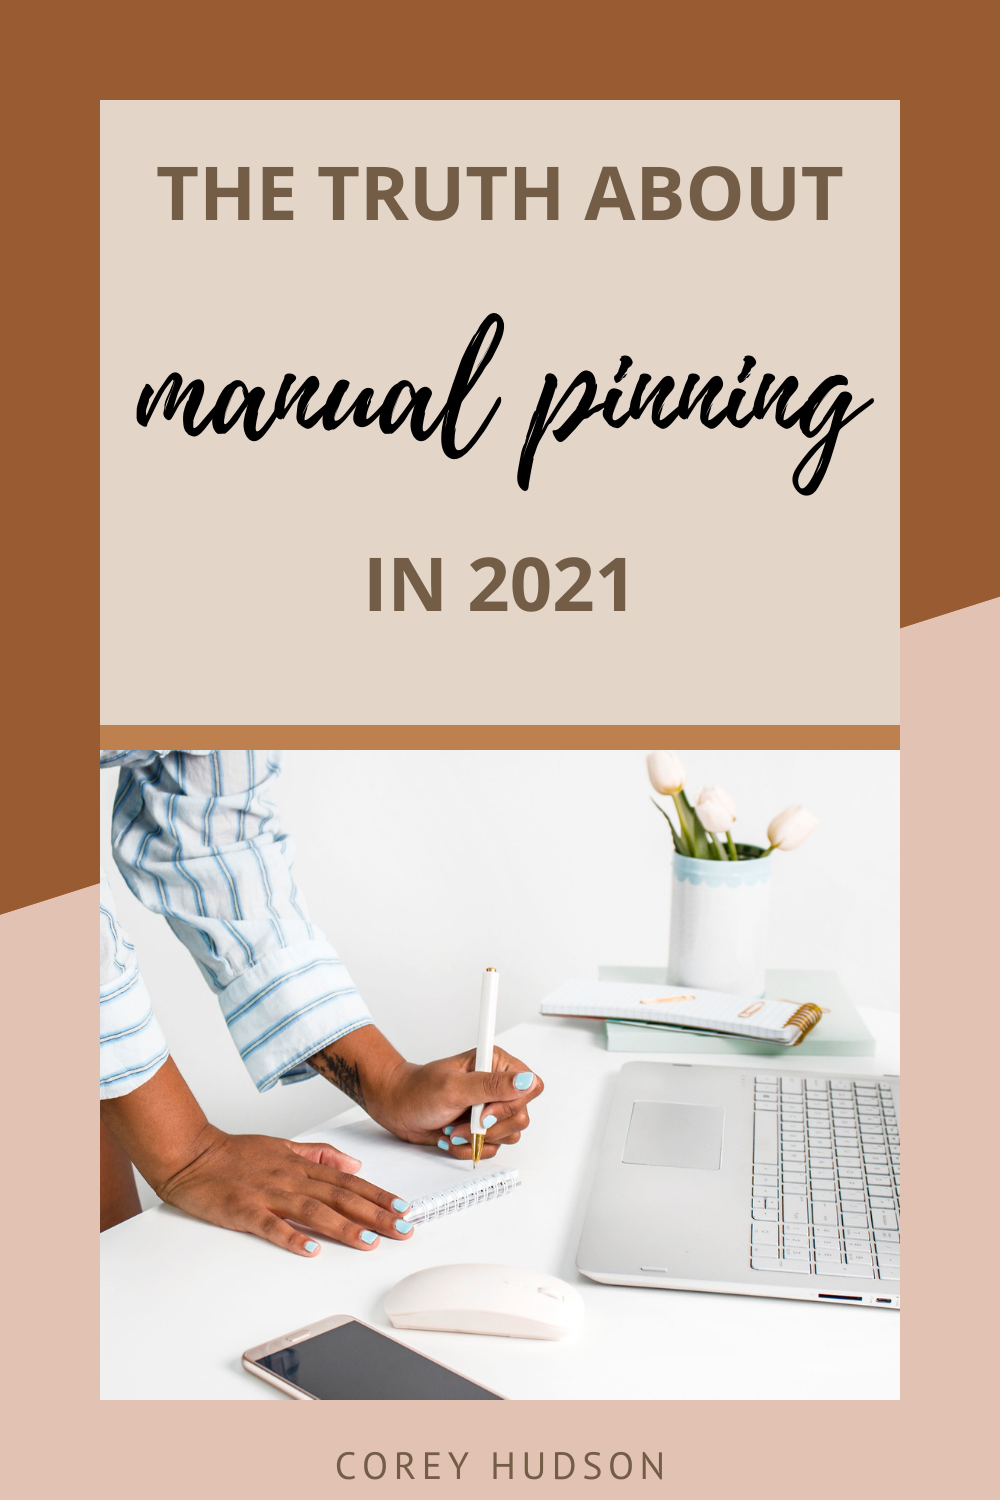 best pinteret course 1 - Manual Pinning vs Tailwind and the best Pinterest Courses 2021